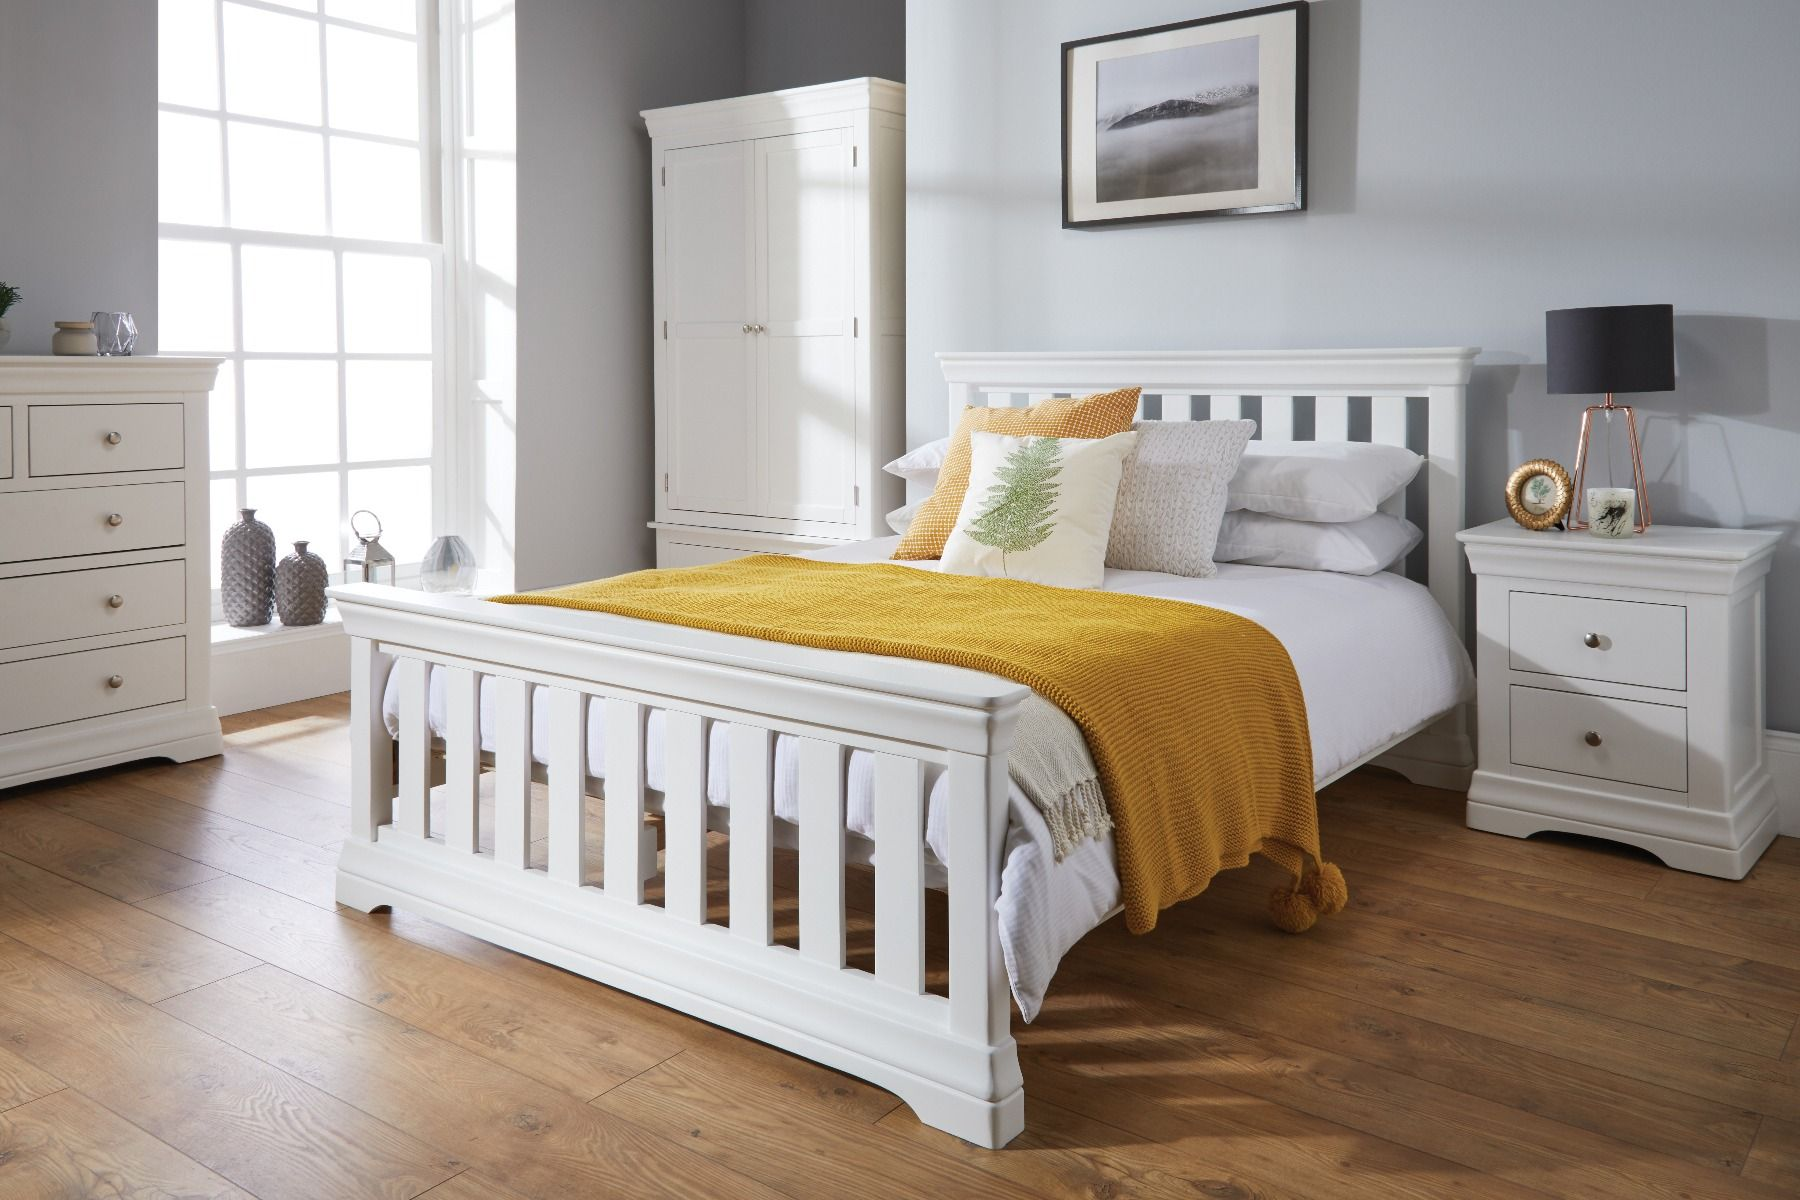 Toulouse White Painted 5 Foot King Size Slatted Bed Free Delivery Top Furniture